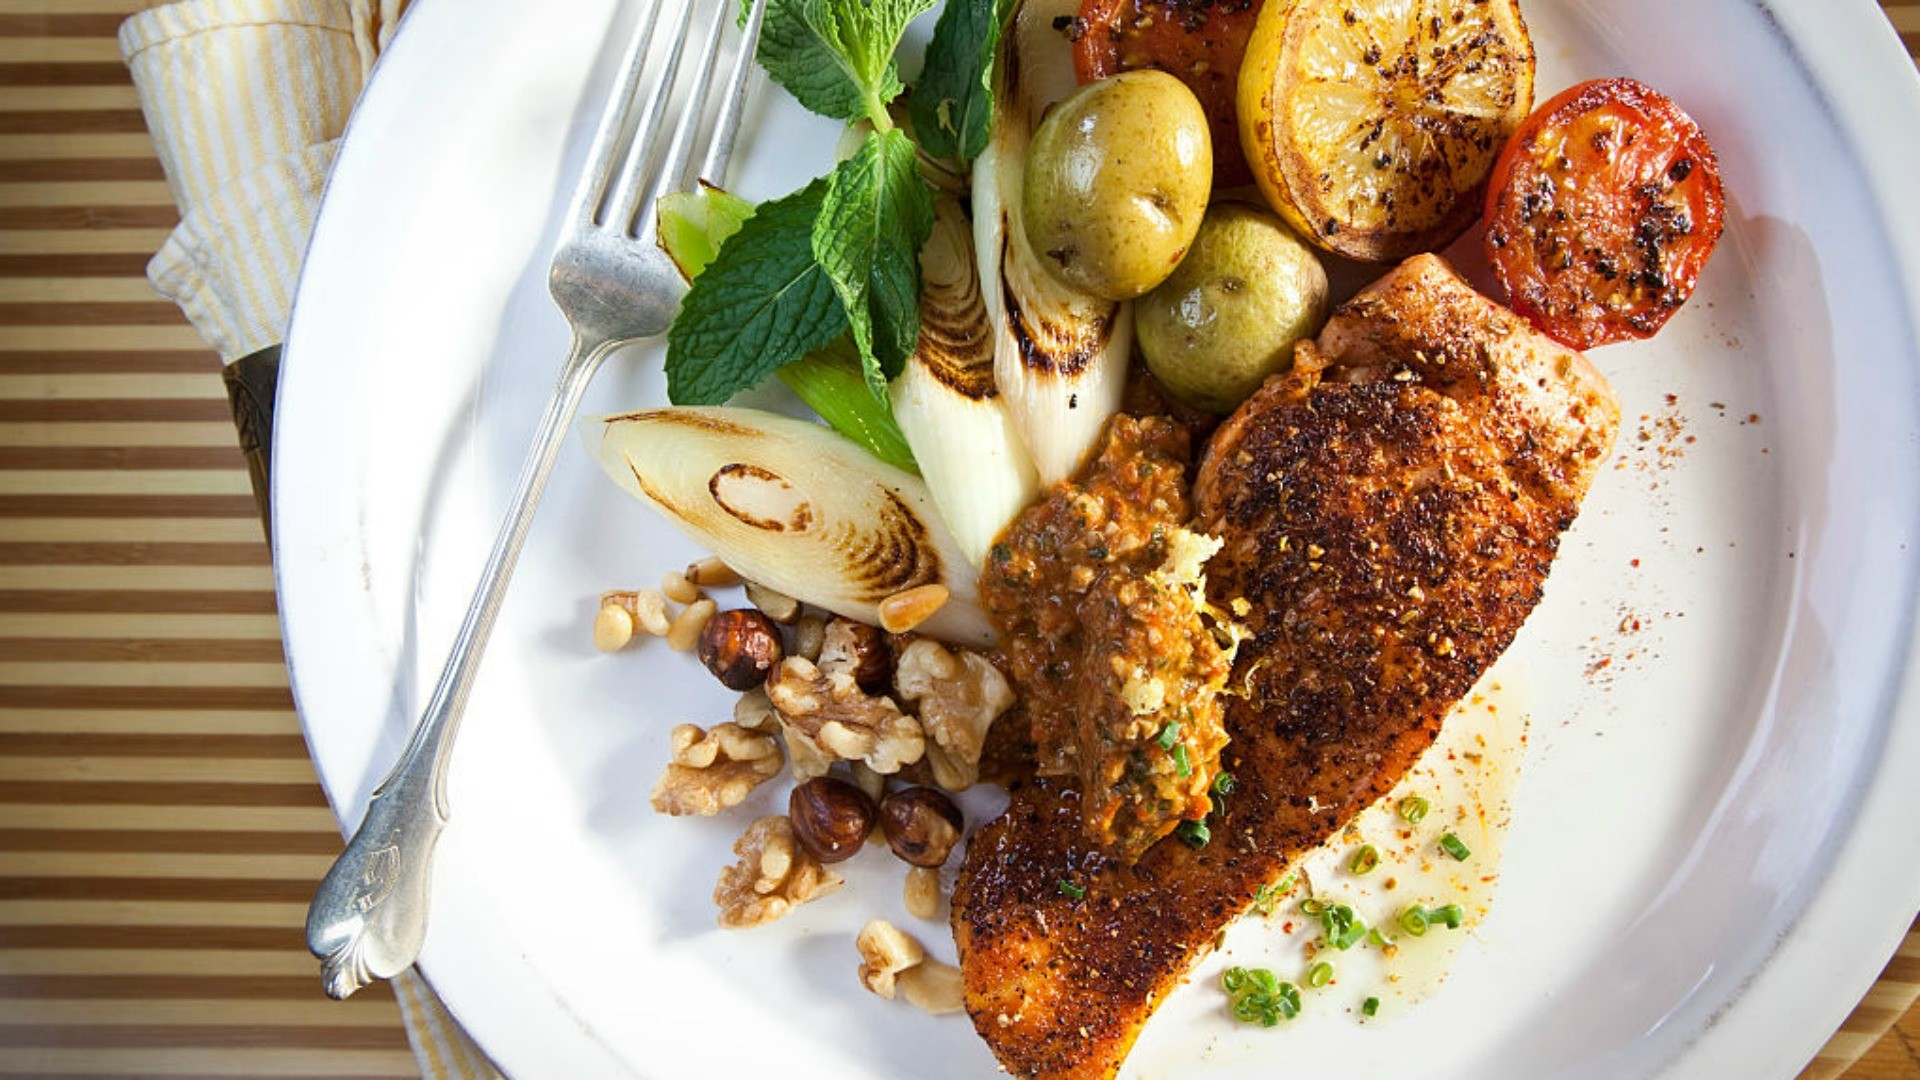 Salmon and vegetables are a good choice when it comes to healthy meals to fuel your cycling